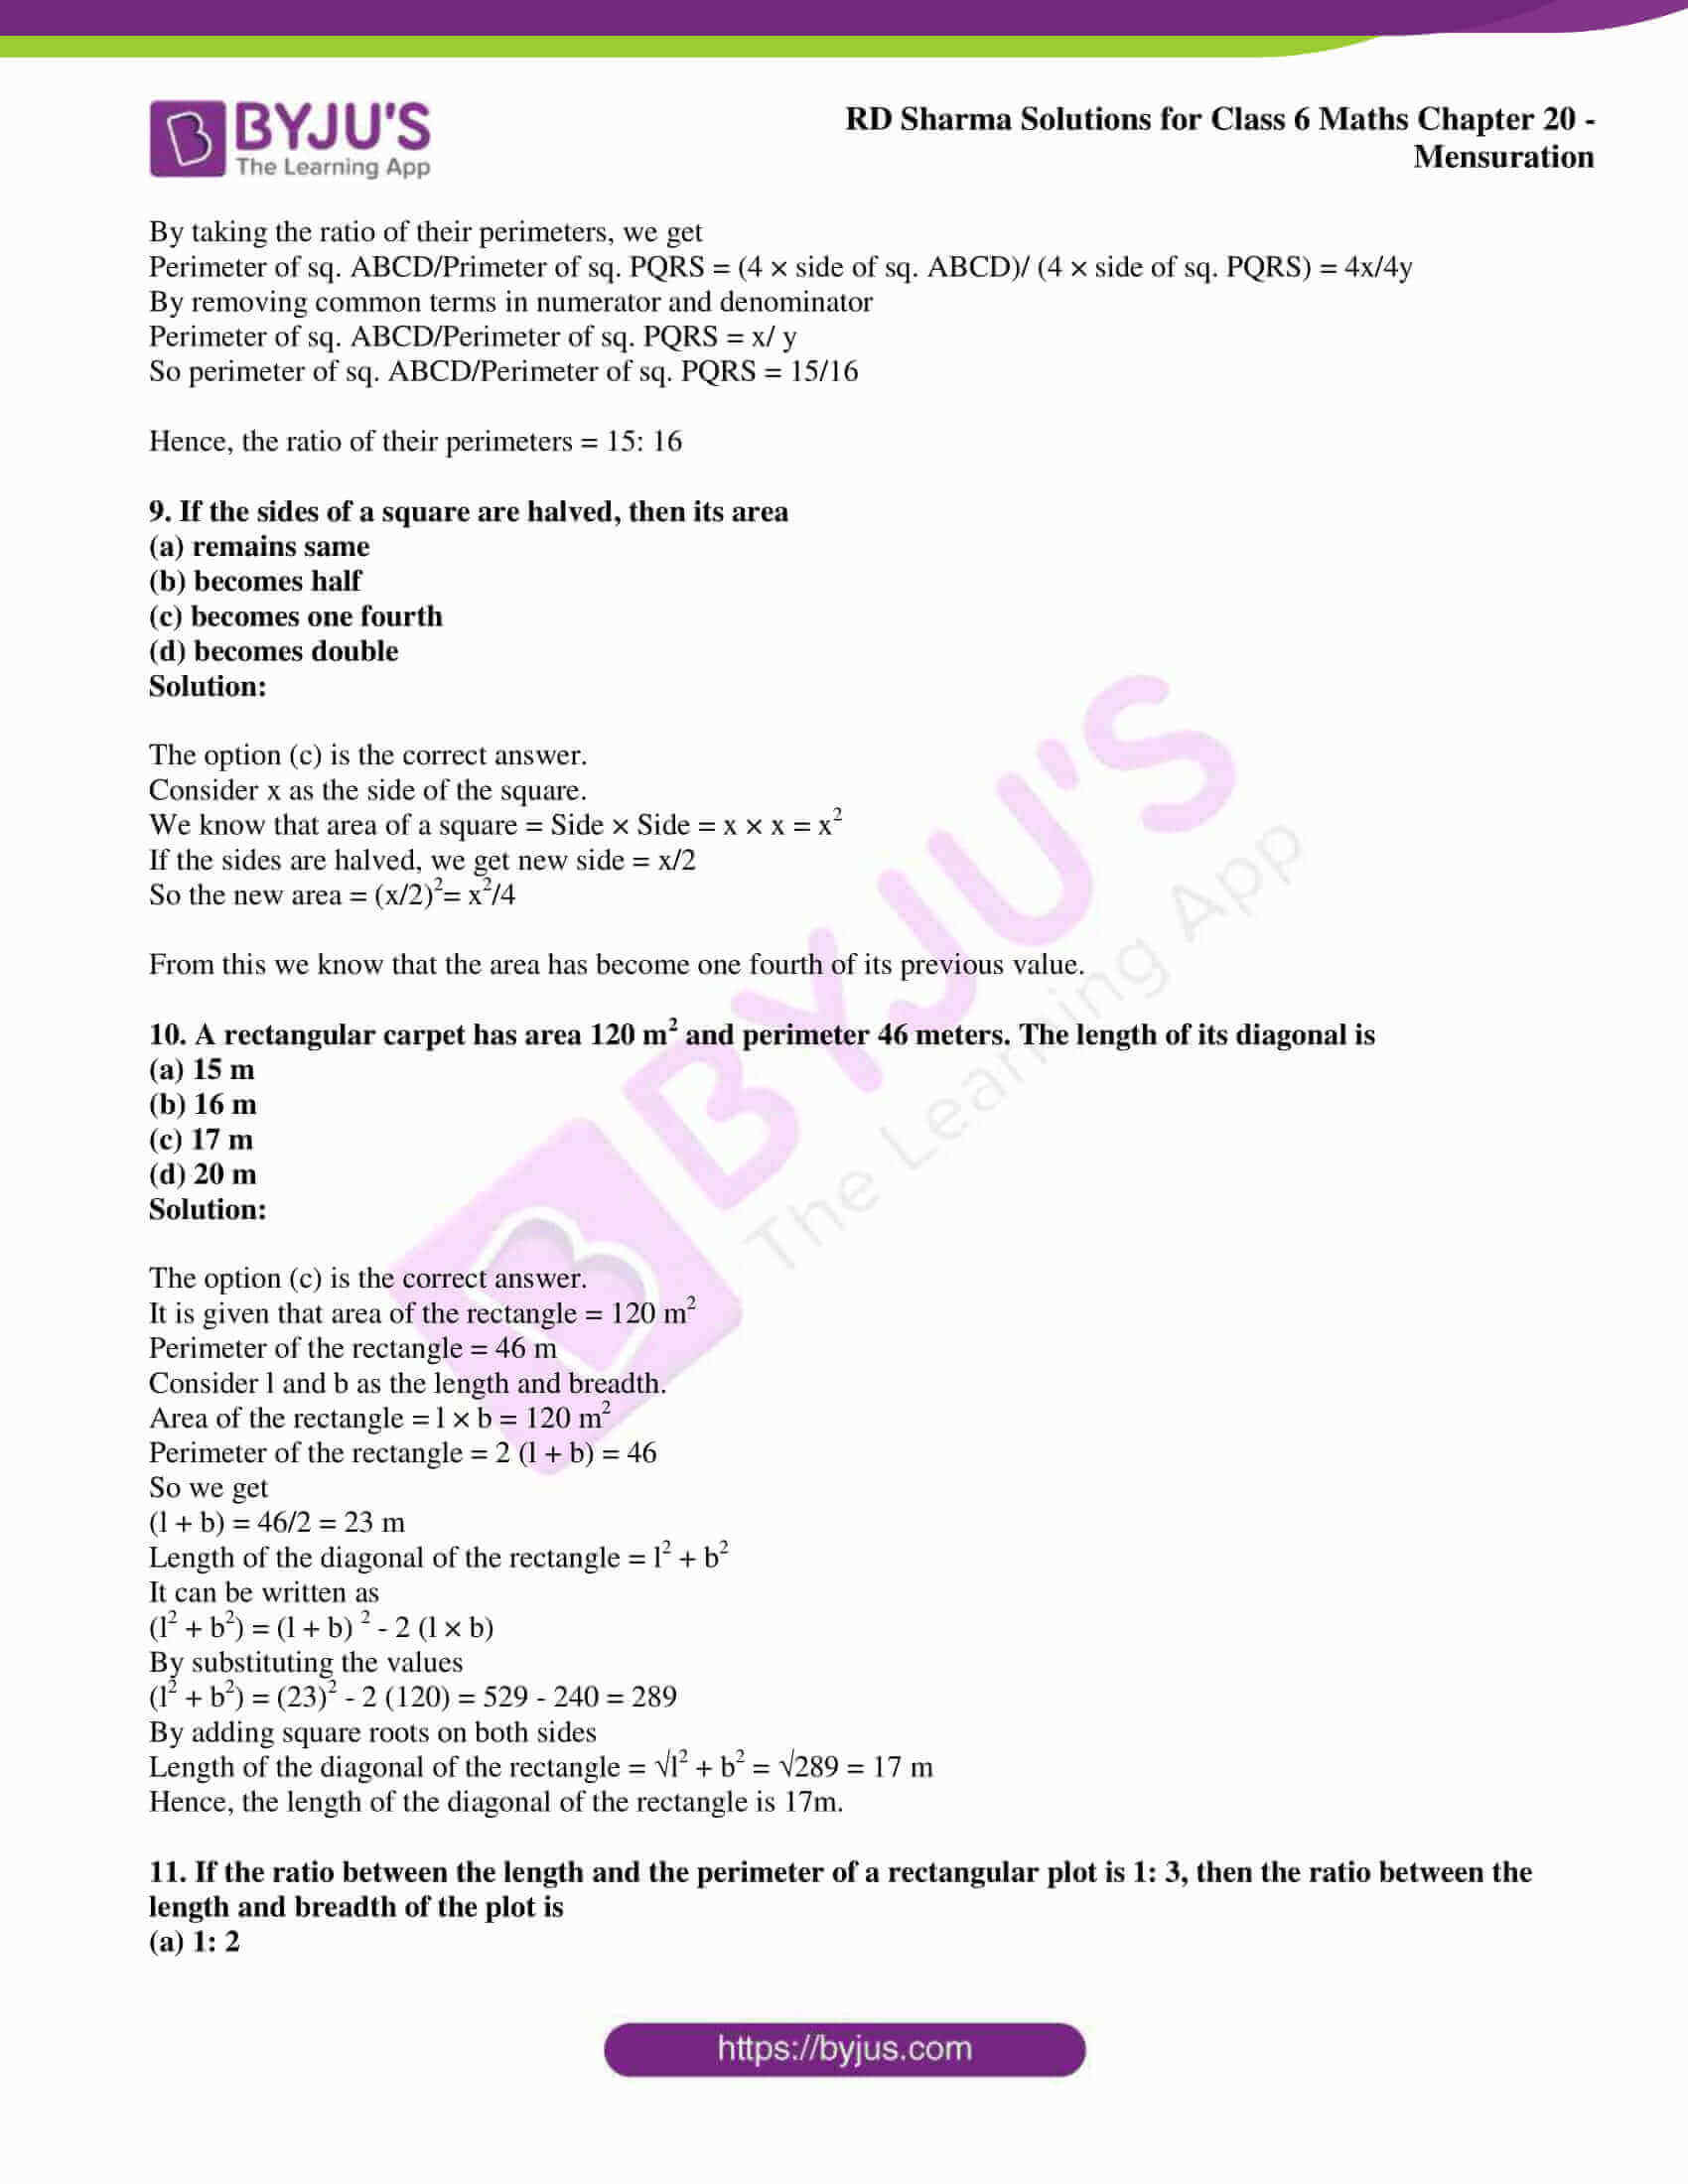 rd sharma solutions nov2020 class 6 maths chapter 20 exercise obj 5